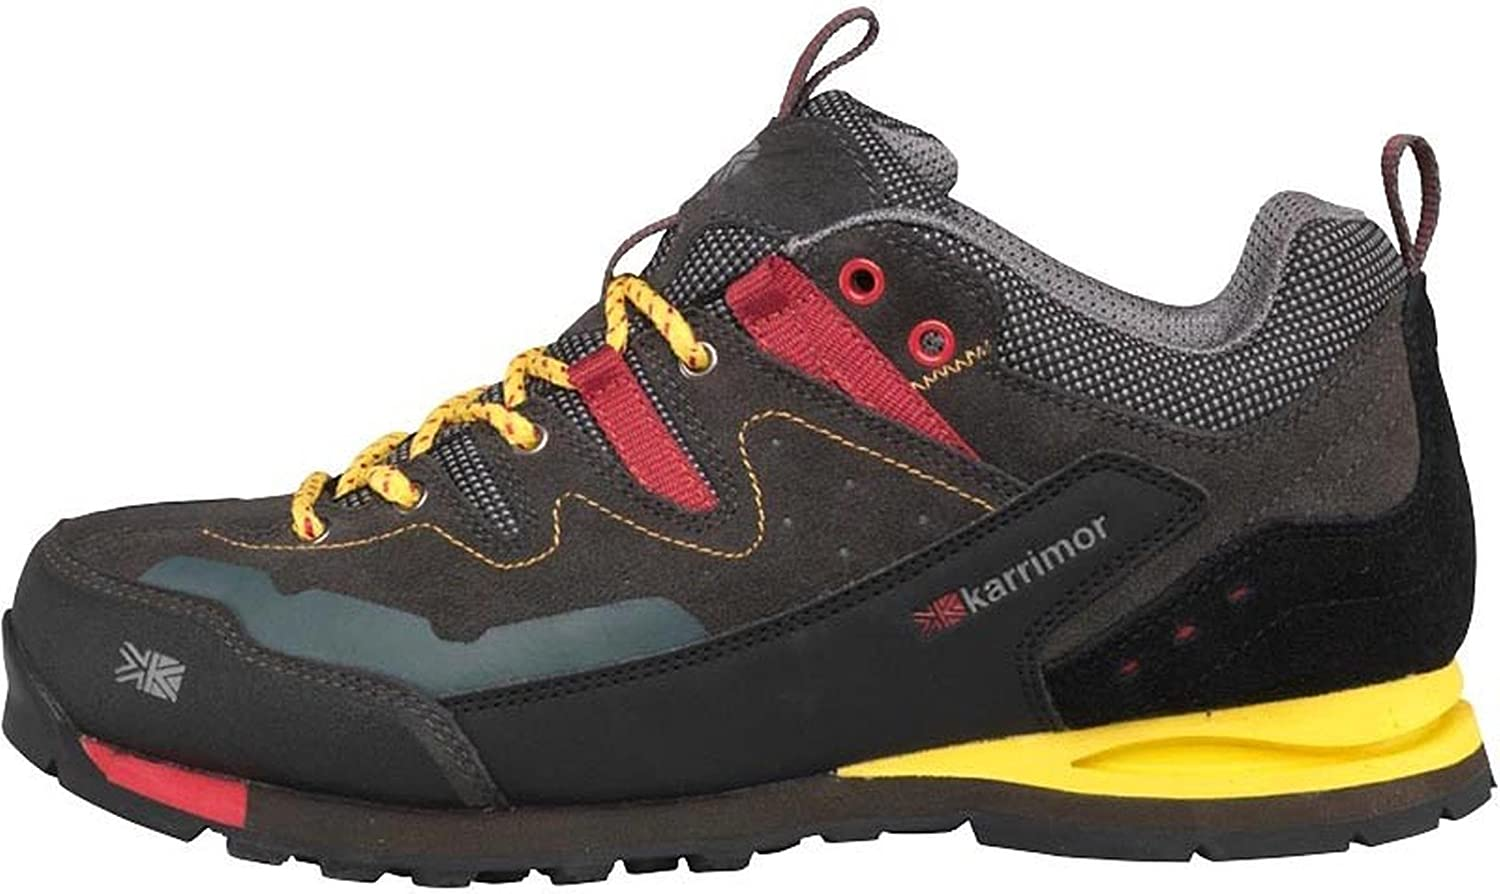 Designer ME Mens Karrimor KSB Tech Approach Hiking shoes Charcoal Yellow Guys Gents